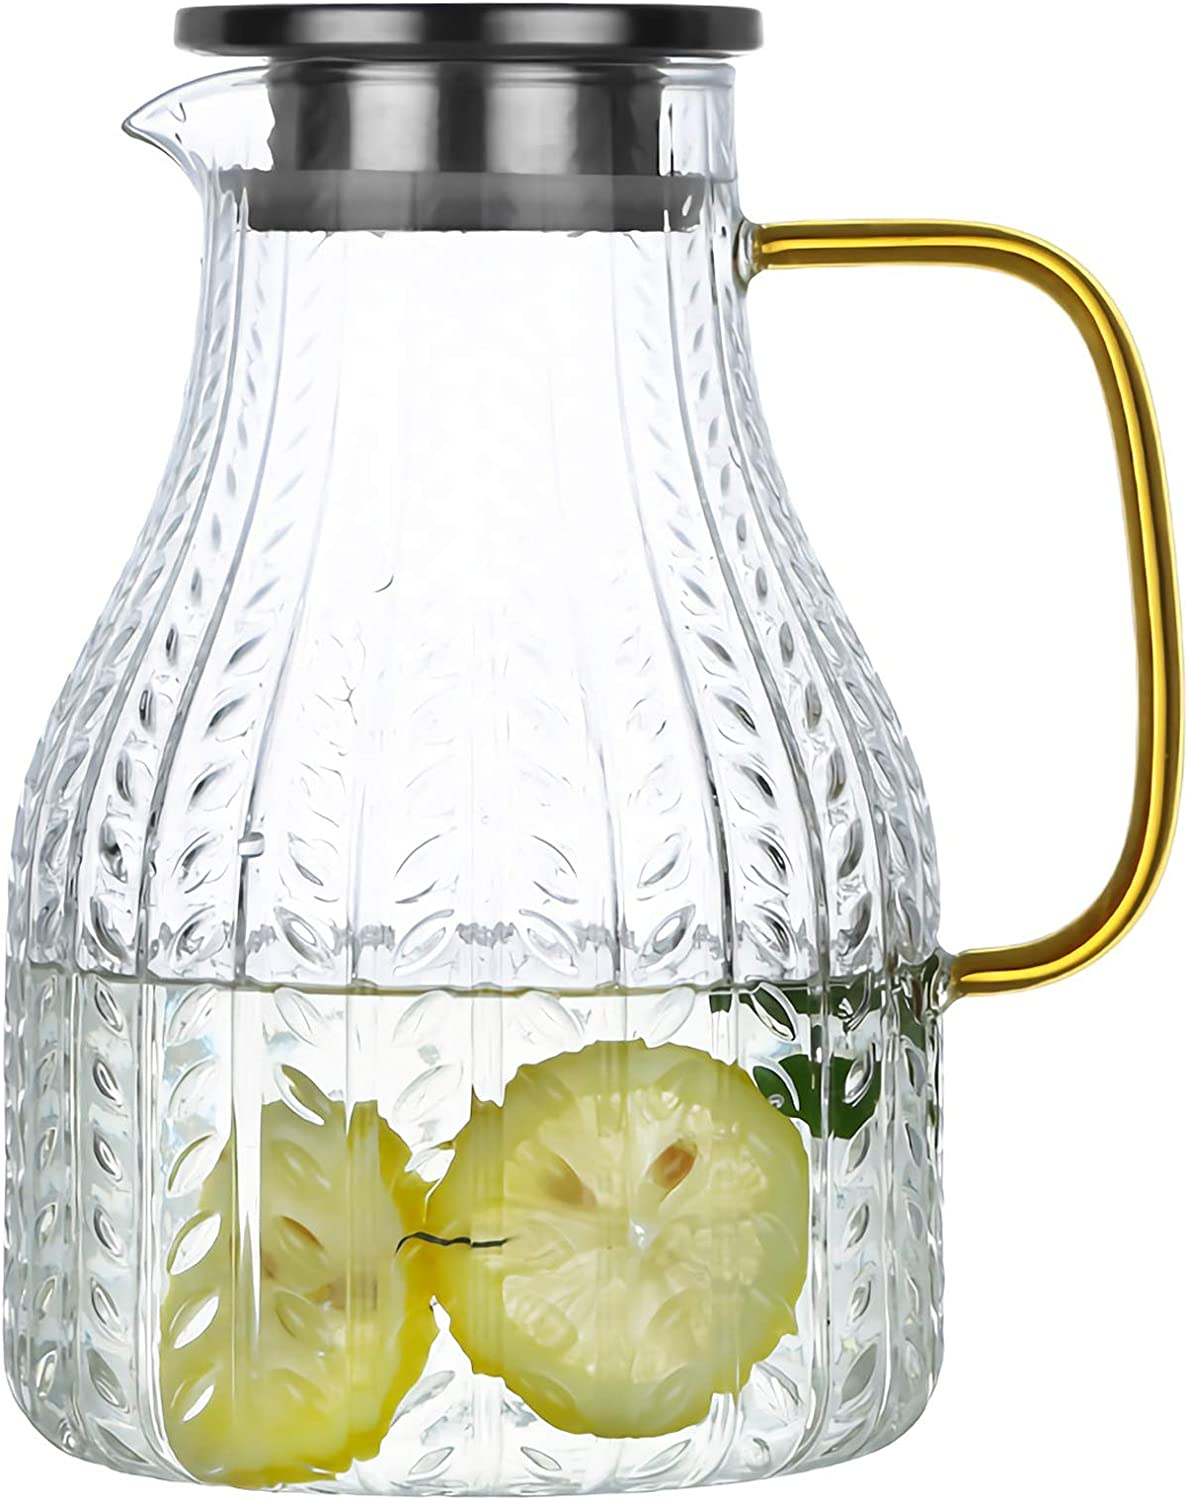 WUWEOT 74 OZ Glass Pitcher with Stainless Steel Lid and Spout, Water Carafe Beverage Pitcher for Cold Water, Hot Water, Homemade Iced Tea and Juice